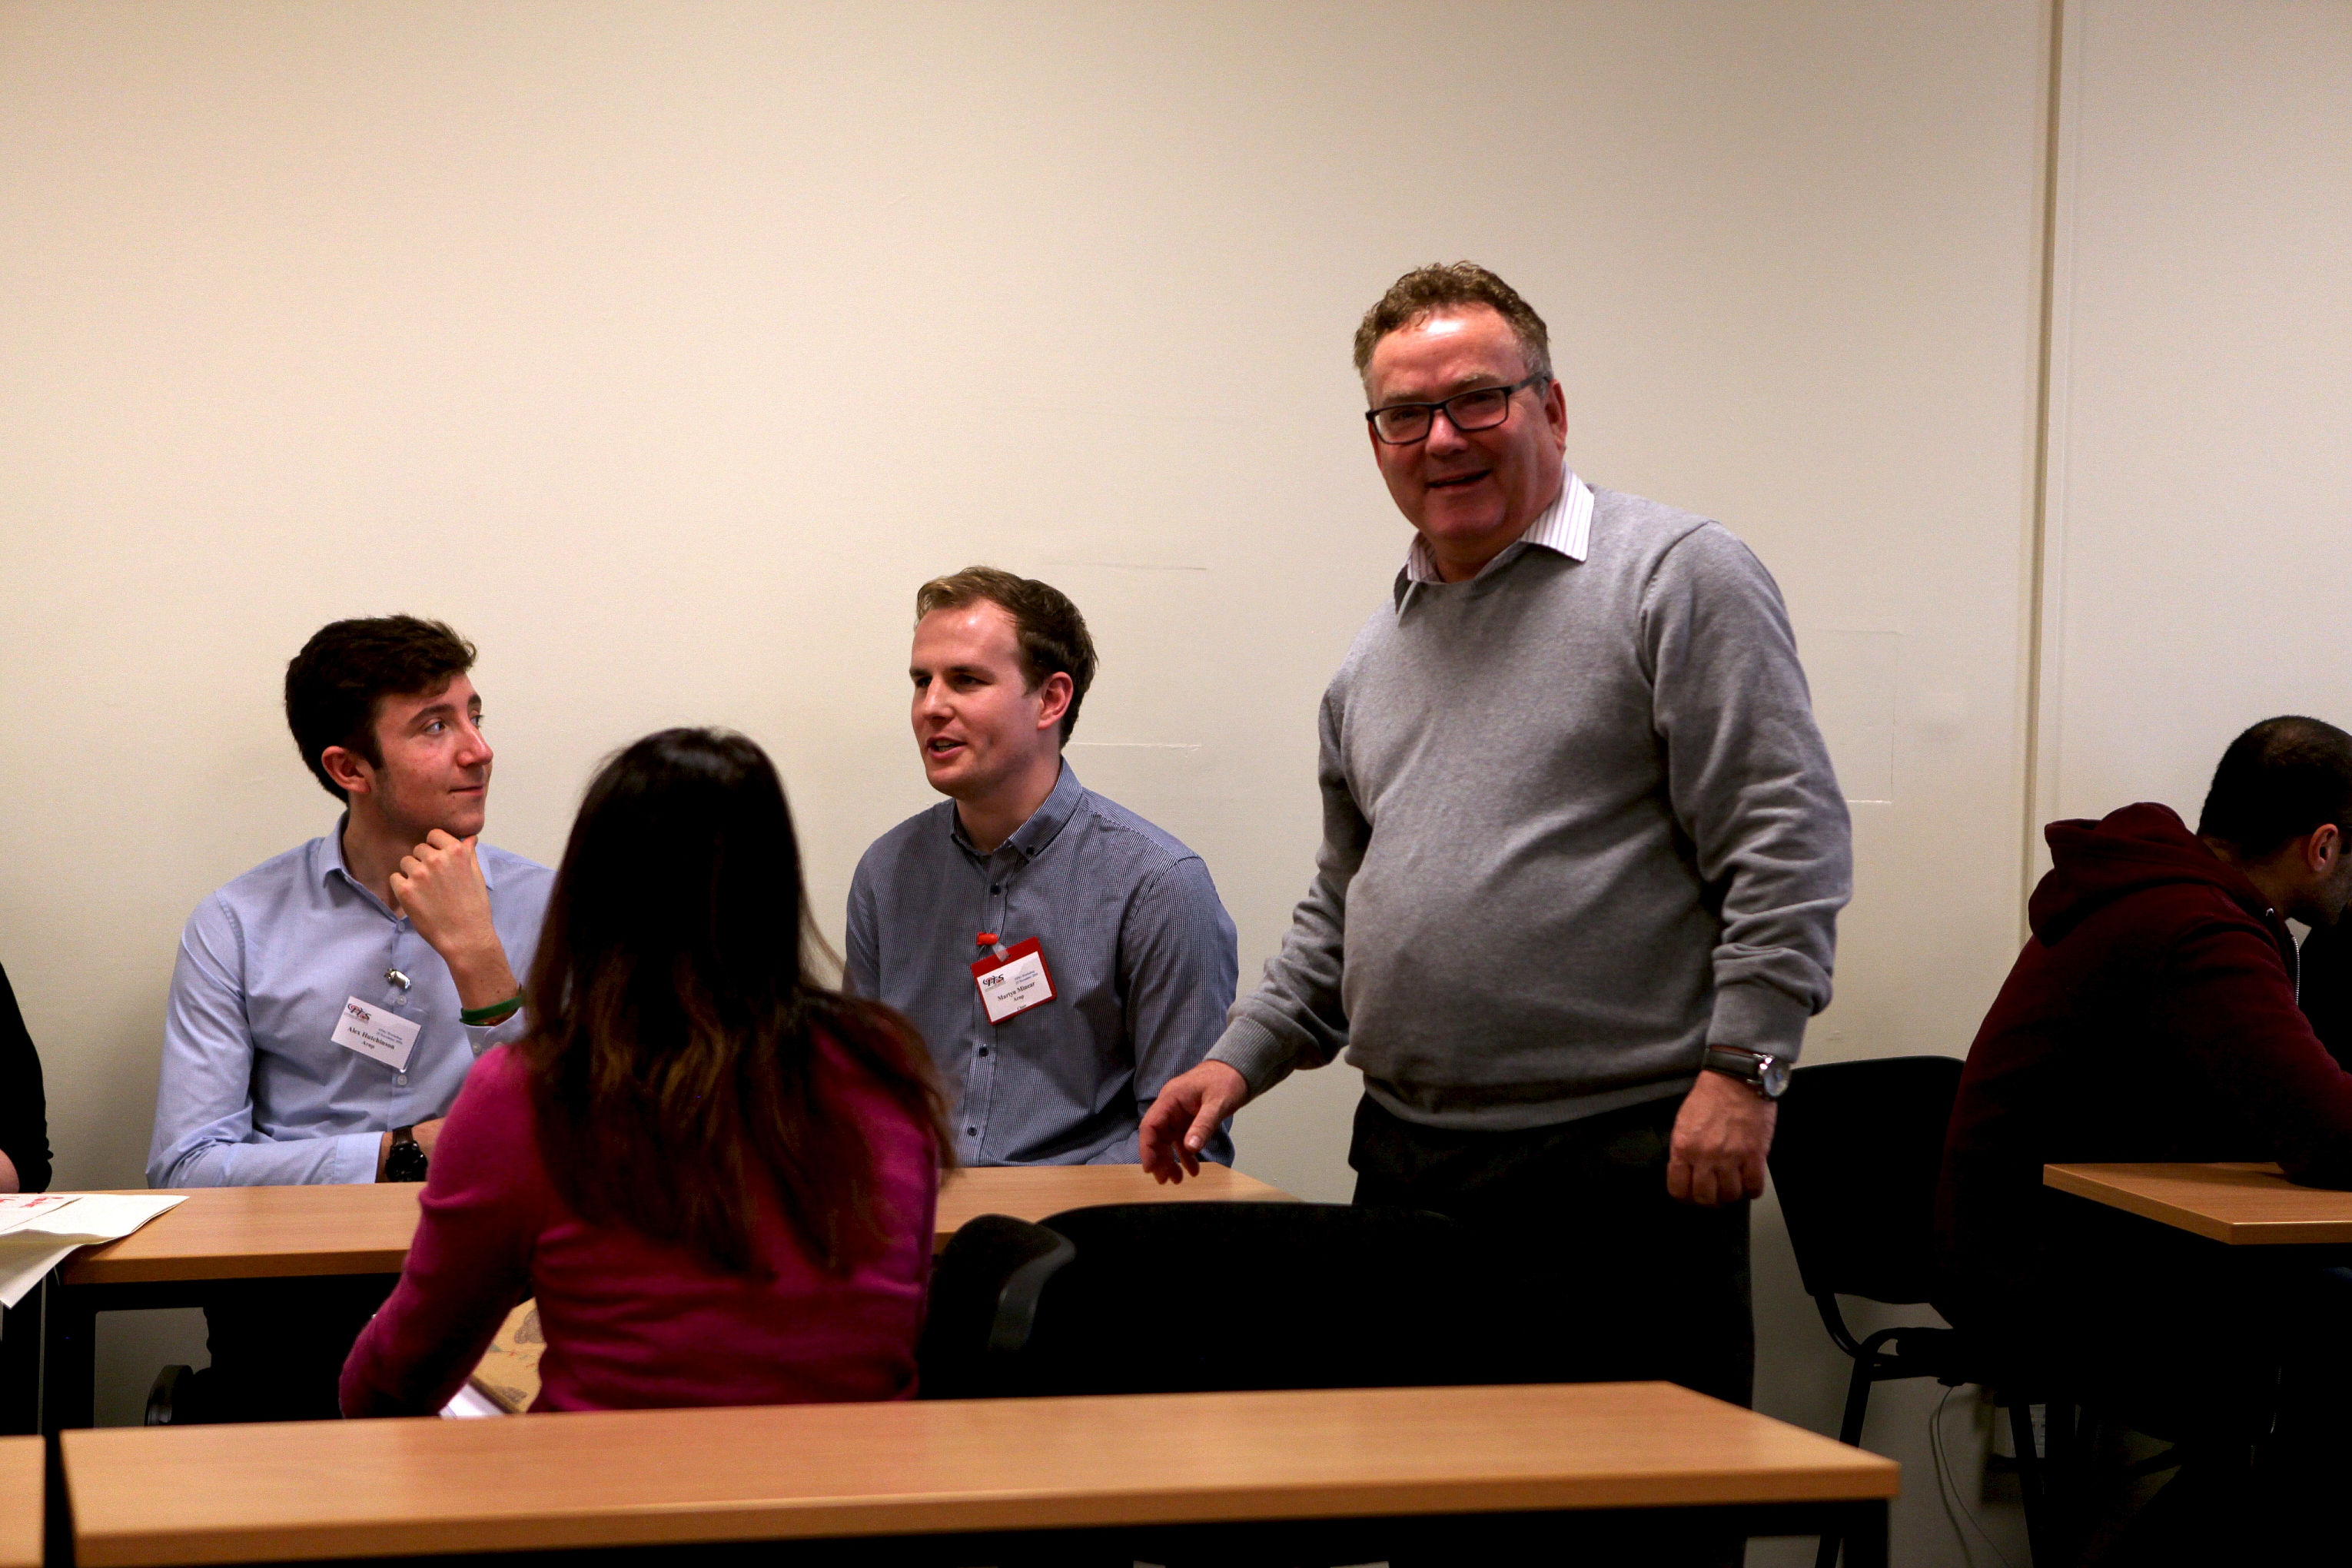 Chief Scientific Adviser leads workshop for ITS United Kingdom young professionals